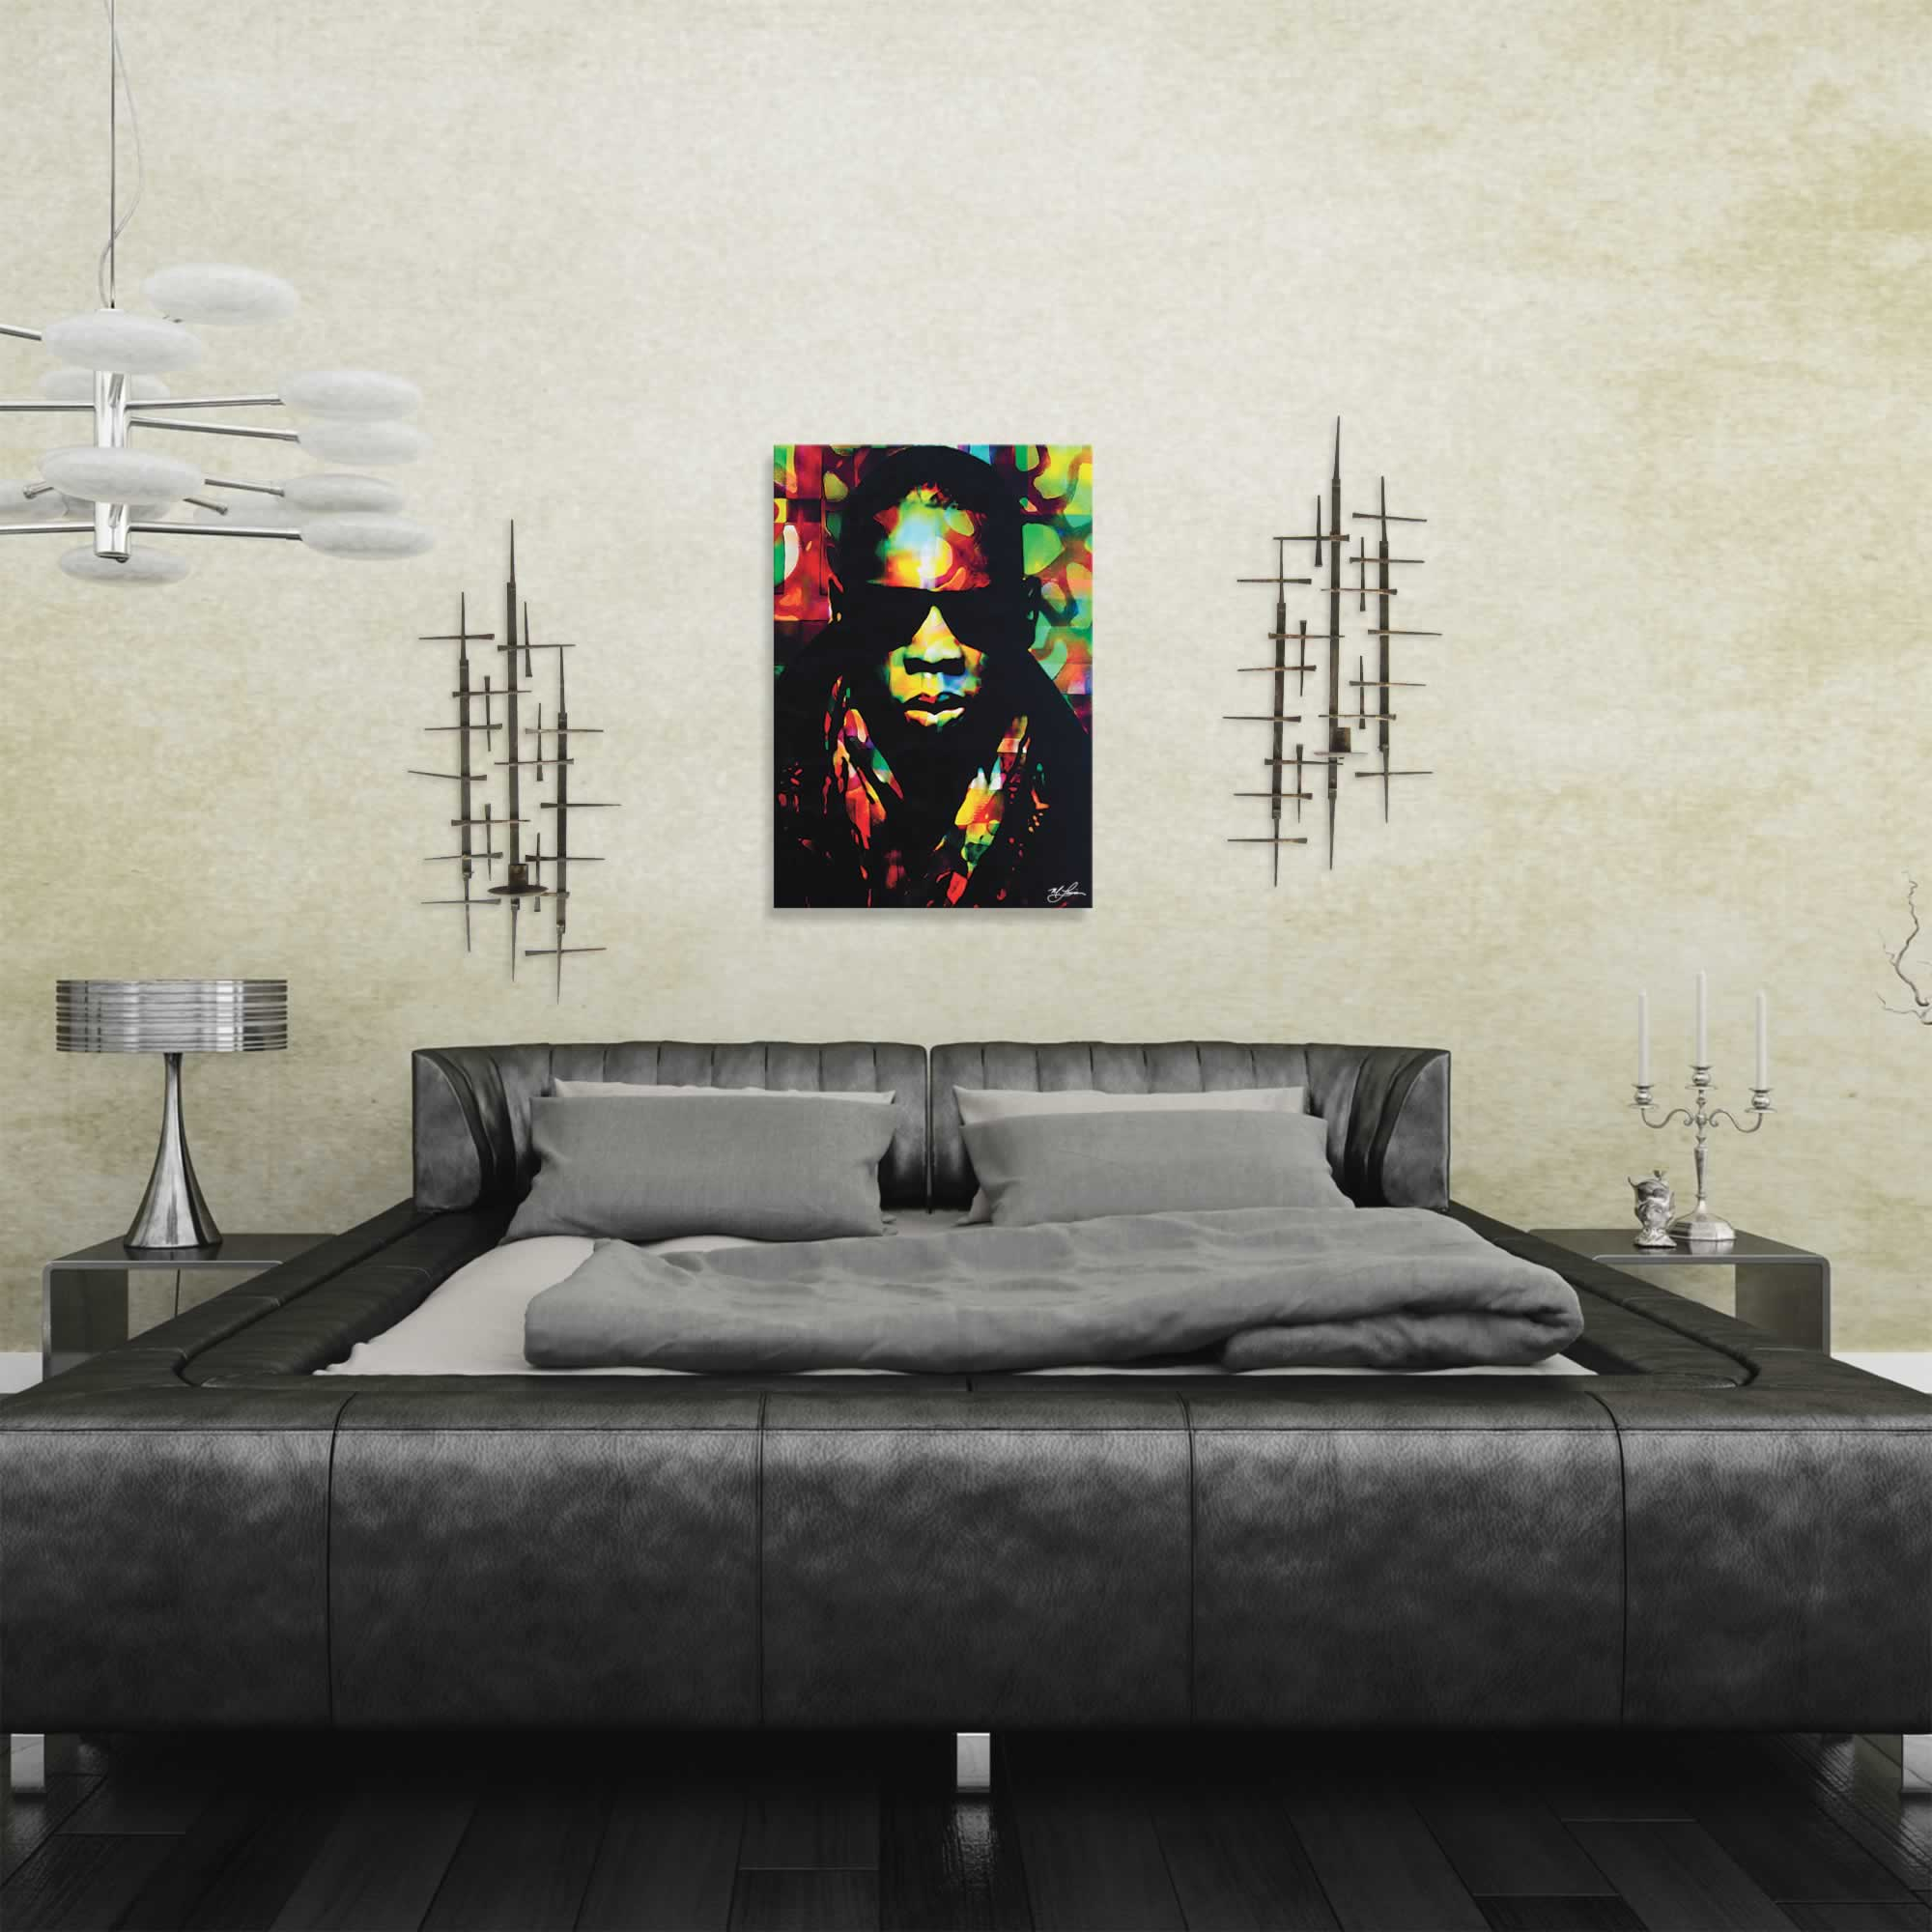 Mark Lewis 'Jay Z Color of a CEO' Limited Edition Pop Art Print on Metal or Acrylic - Alternate View 1